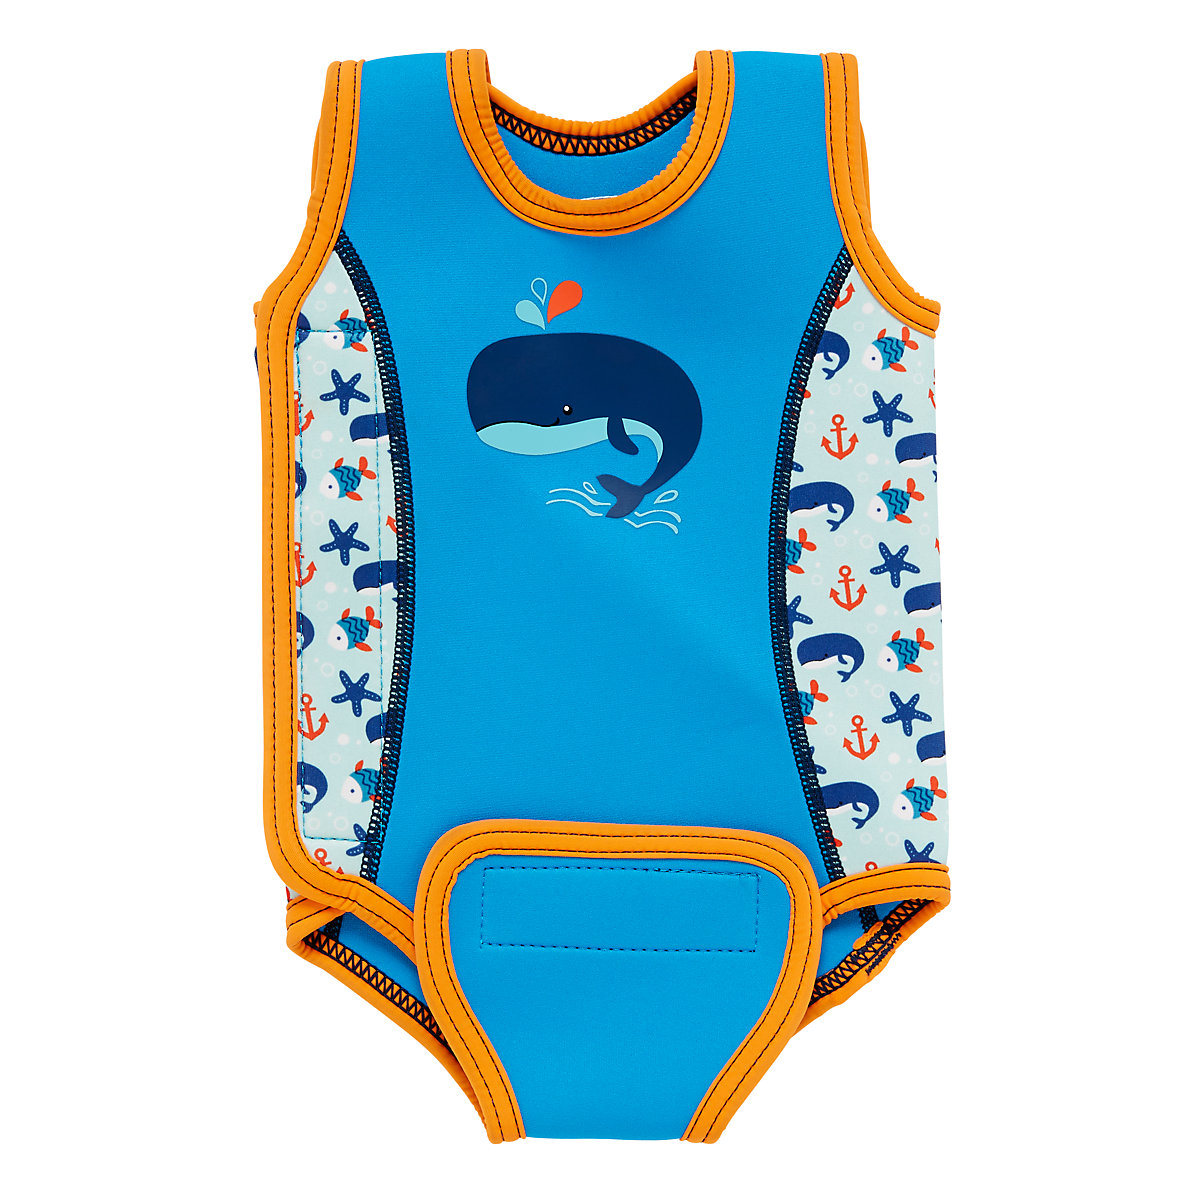 Image of Mothercare Baby Warmers Blue 612 Months